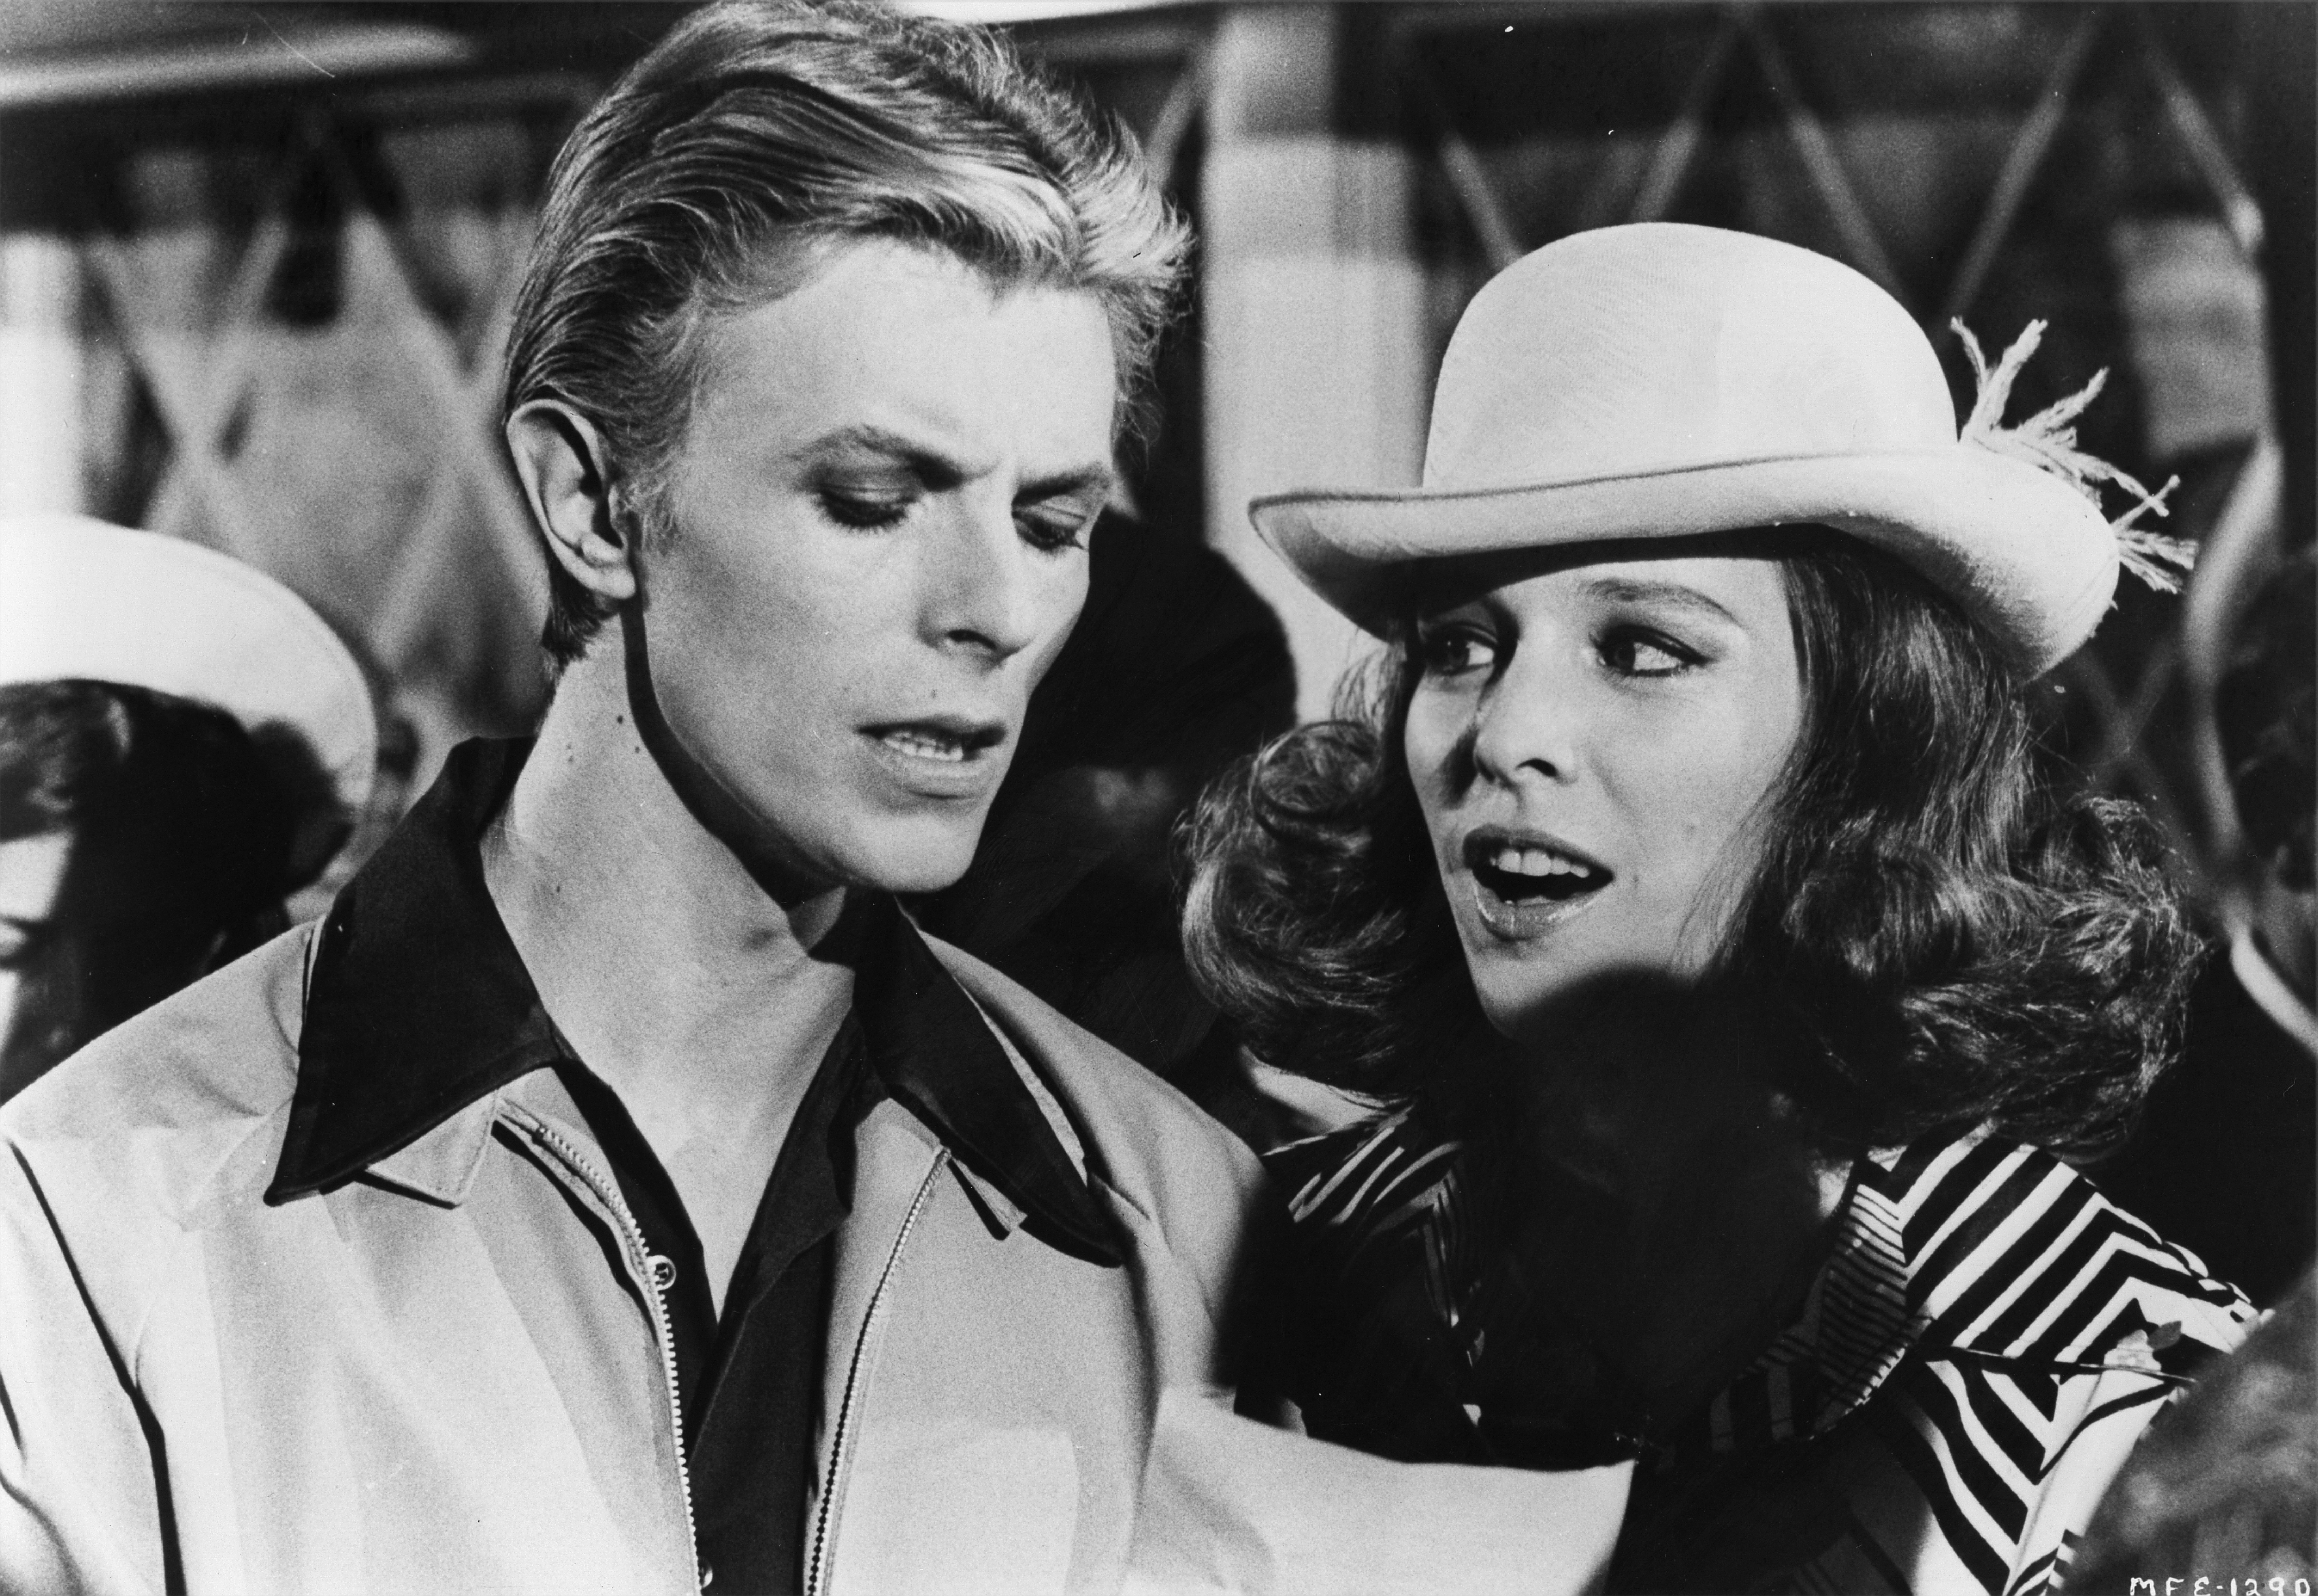 """David Bowie und Candy Clark in einer Szene in """"The Man Who Fell To Earth"""""""